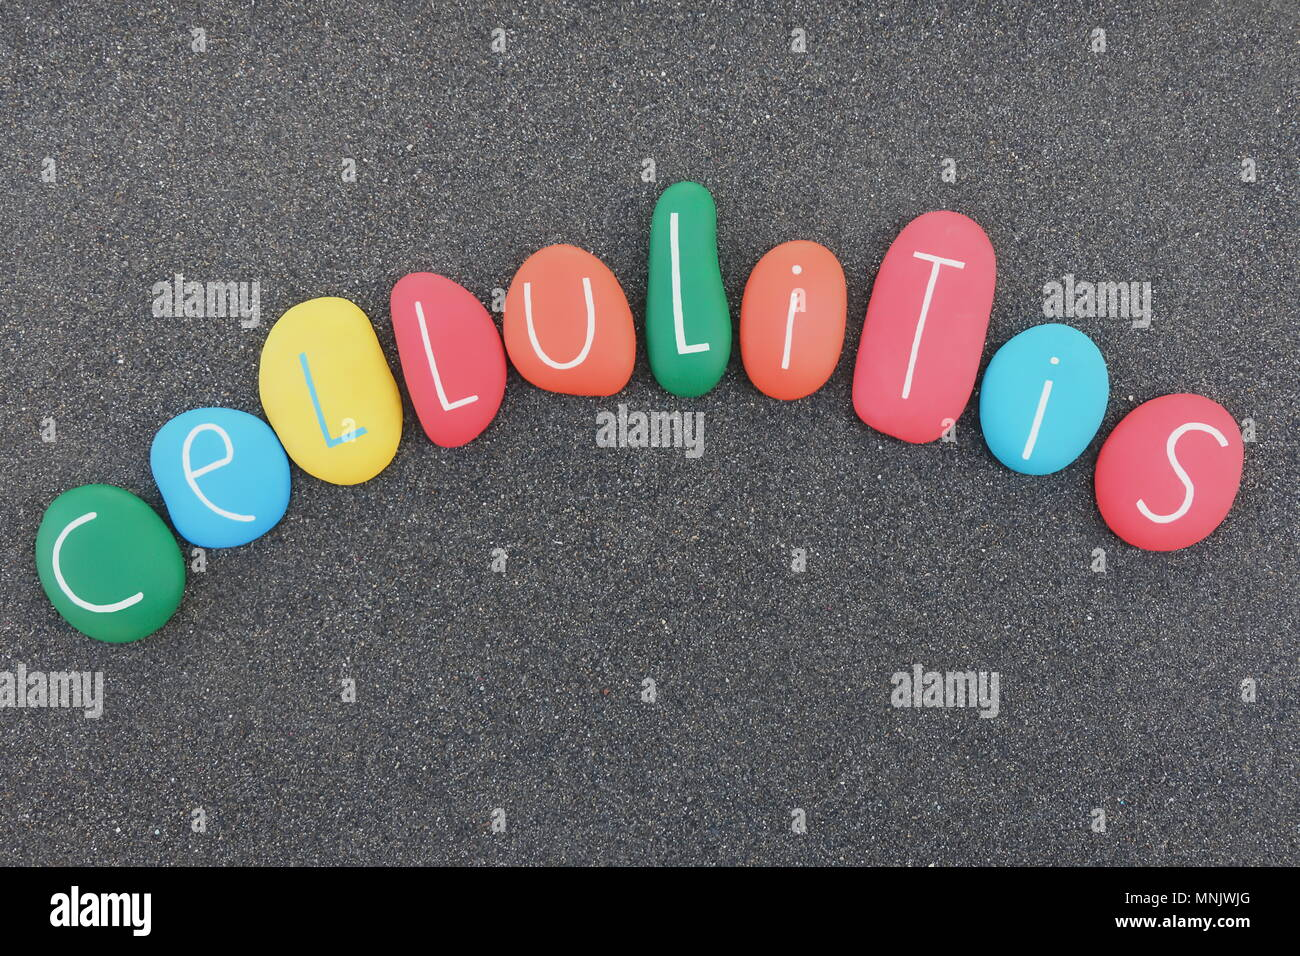 Cellulitis text word with multicolored sea stones over black volcanic sand Stock Photo